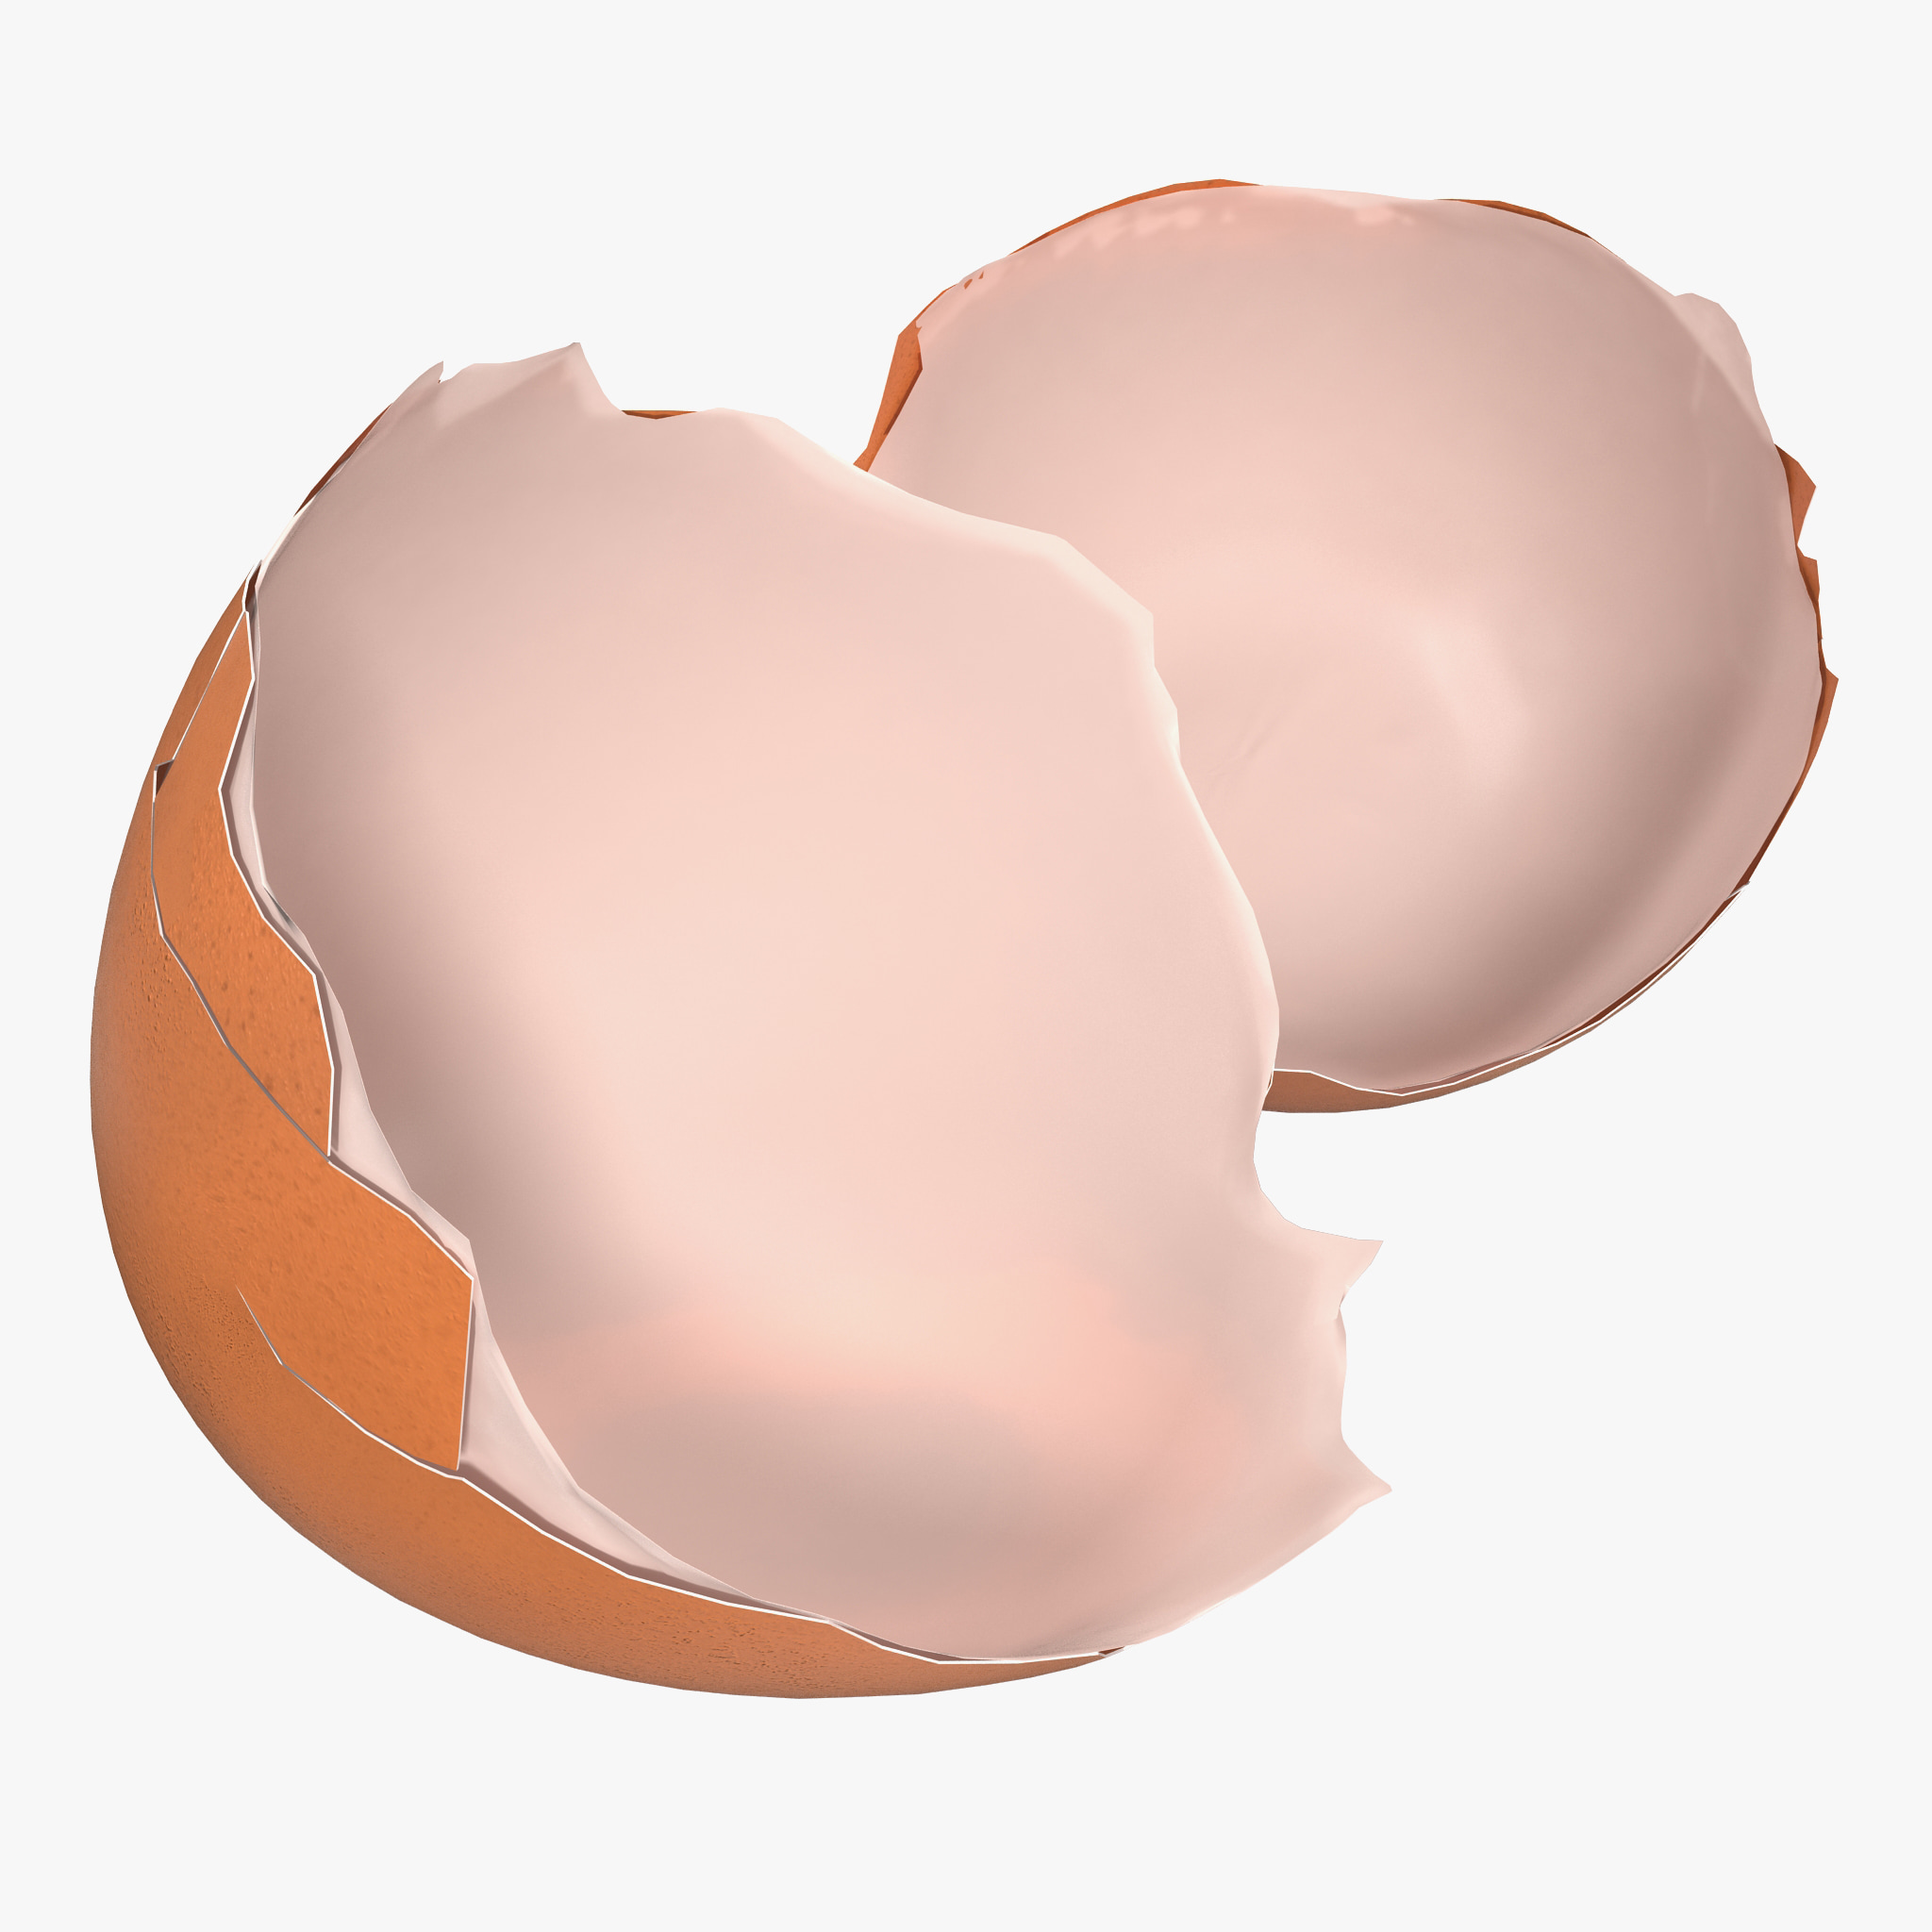 3ds max egg shell